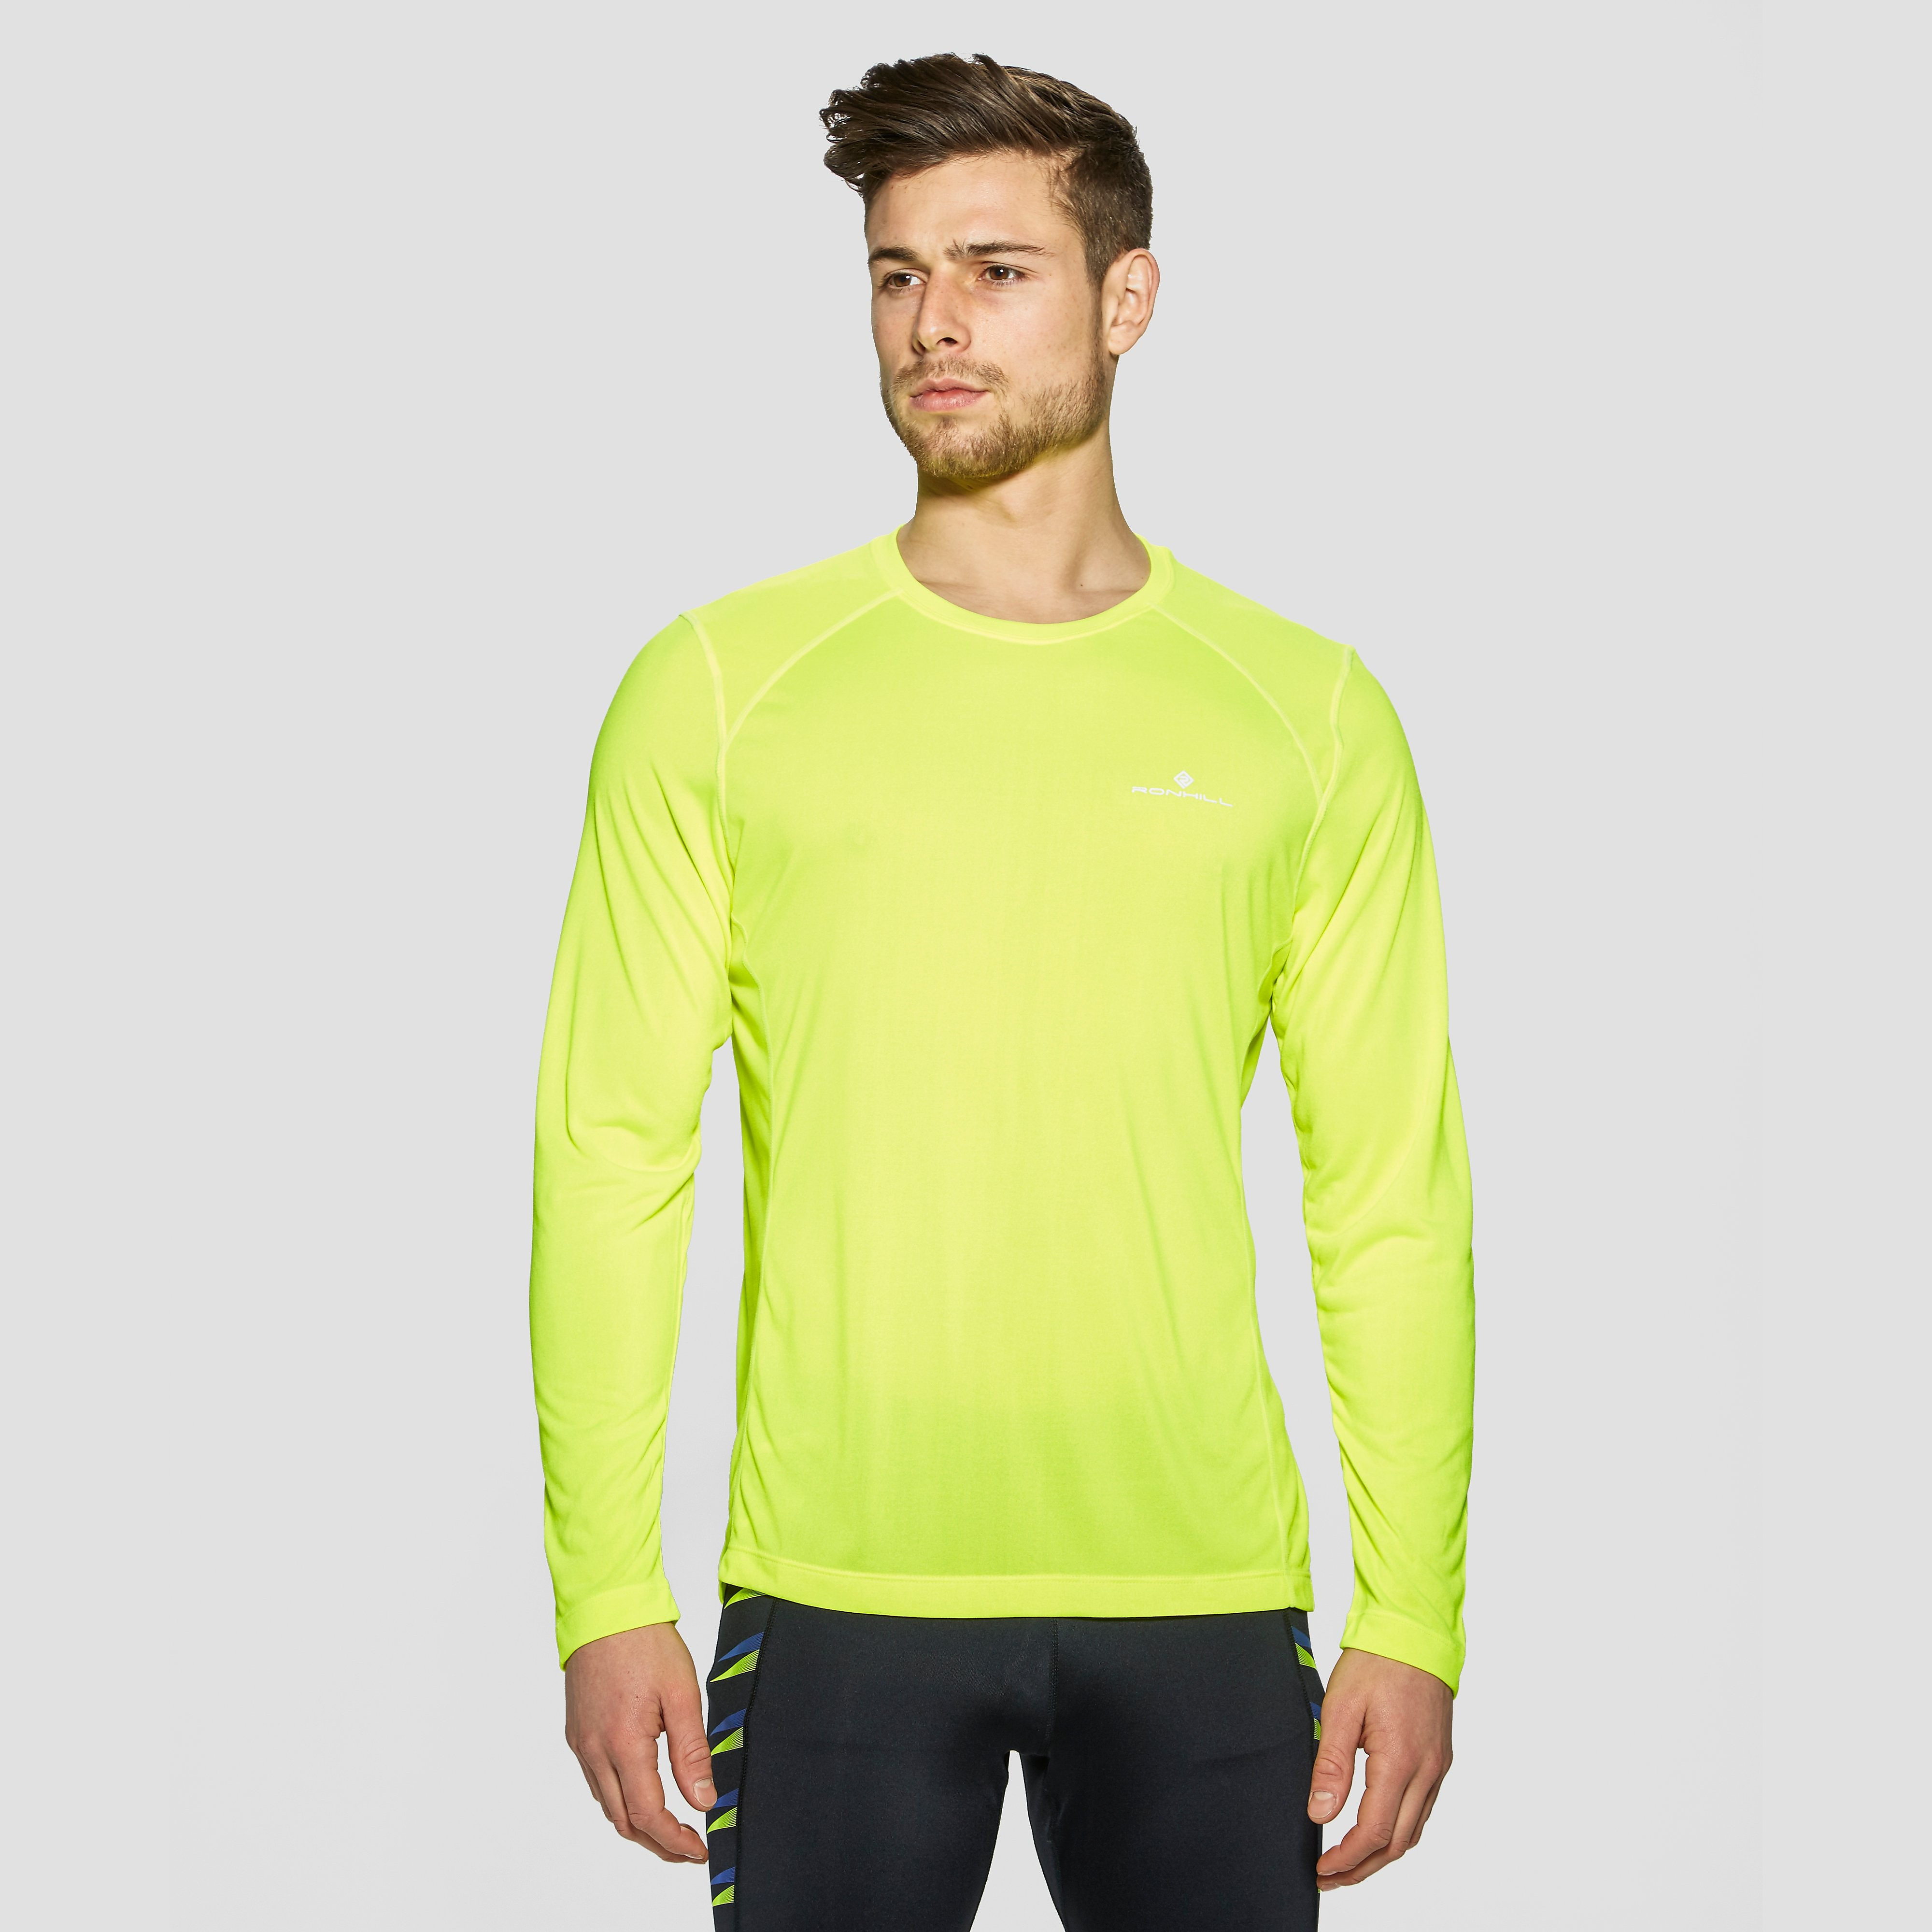 Ronhill Motion Long Sleeve Men's Running Top